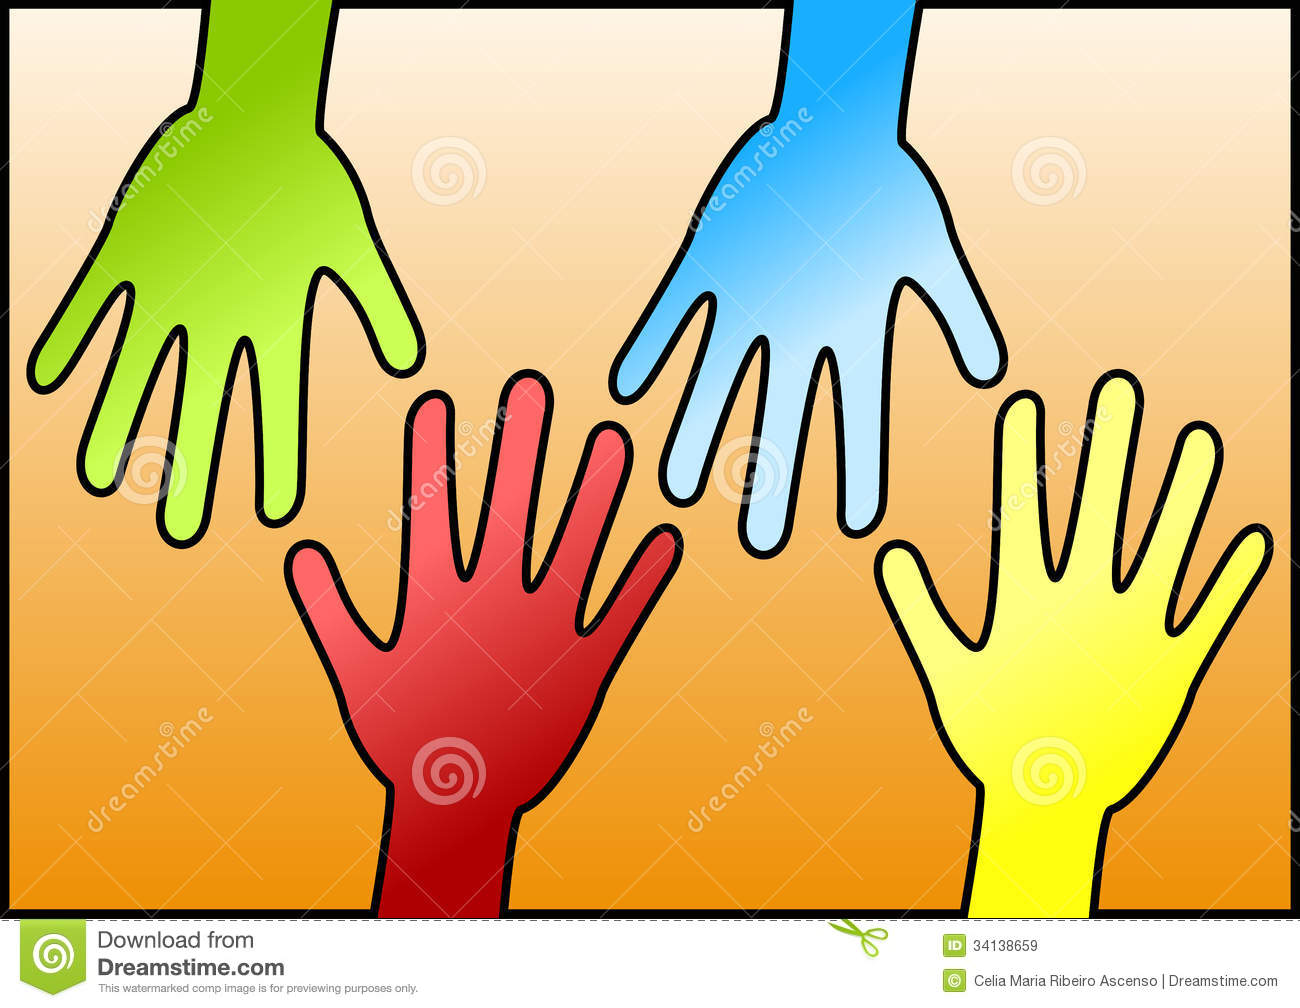 Love Each Other Clip Art: Hands Reaching Eachother For Help Royalty Free Stock